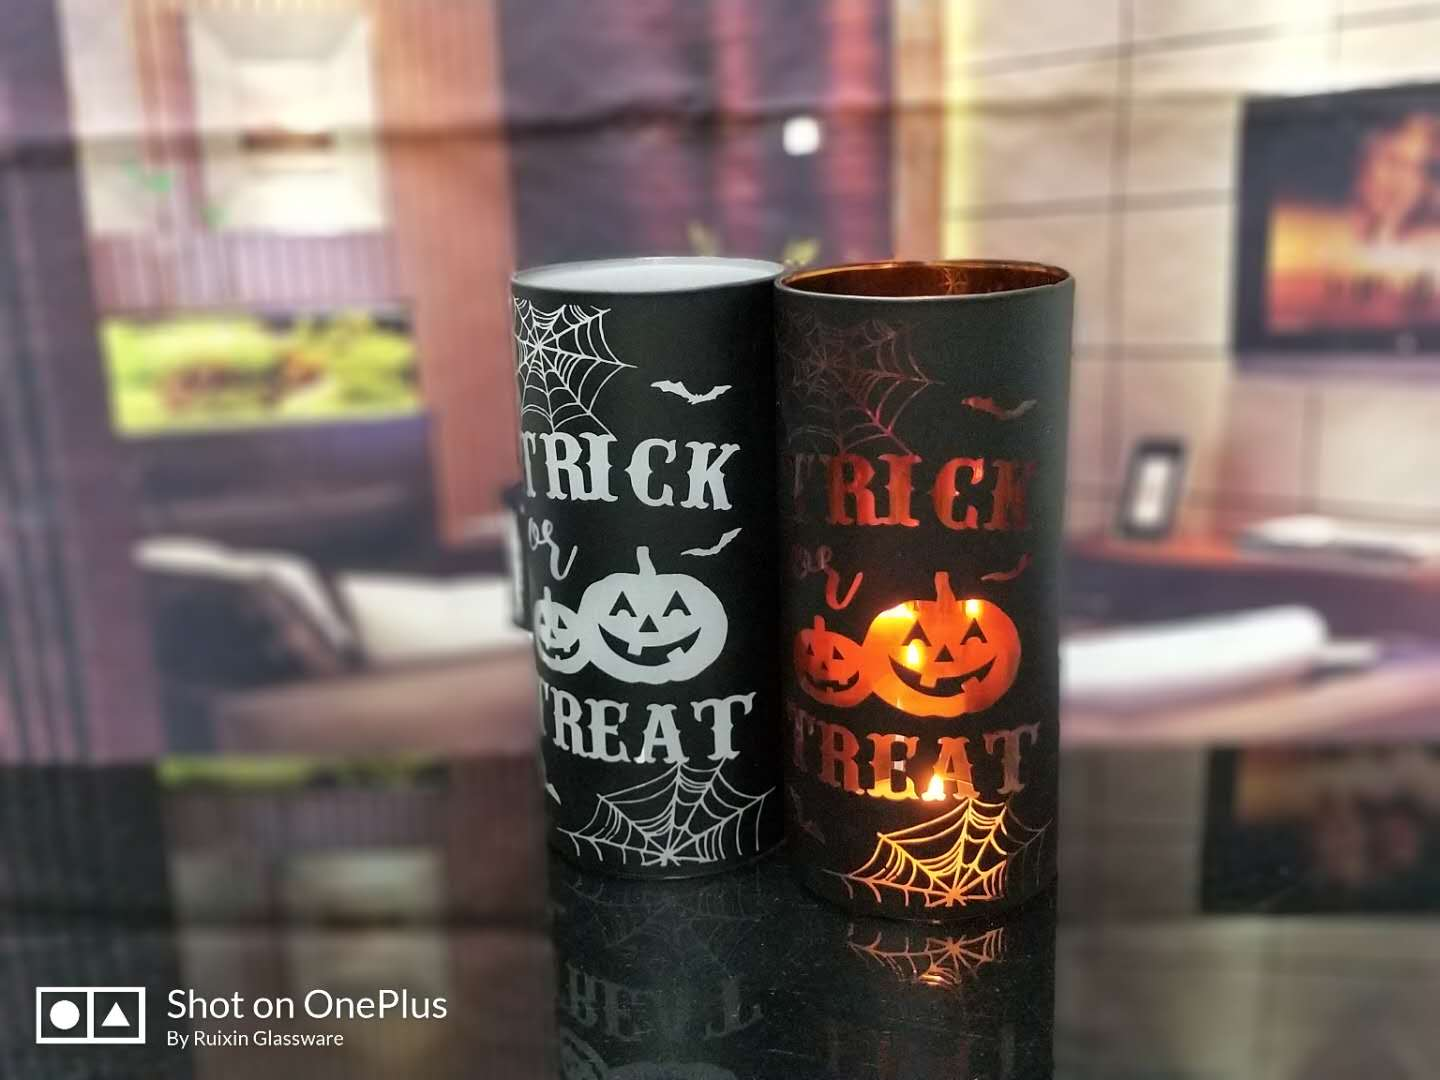 Groothandel Halloween Decoratie.Glas Kaars Houder Voor Halloween Decoratie China Candle Holder Leveranciers Wholesale Candle Holders Candlestick Holder Fabrikant China Candle Container Supplier Factory In China